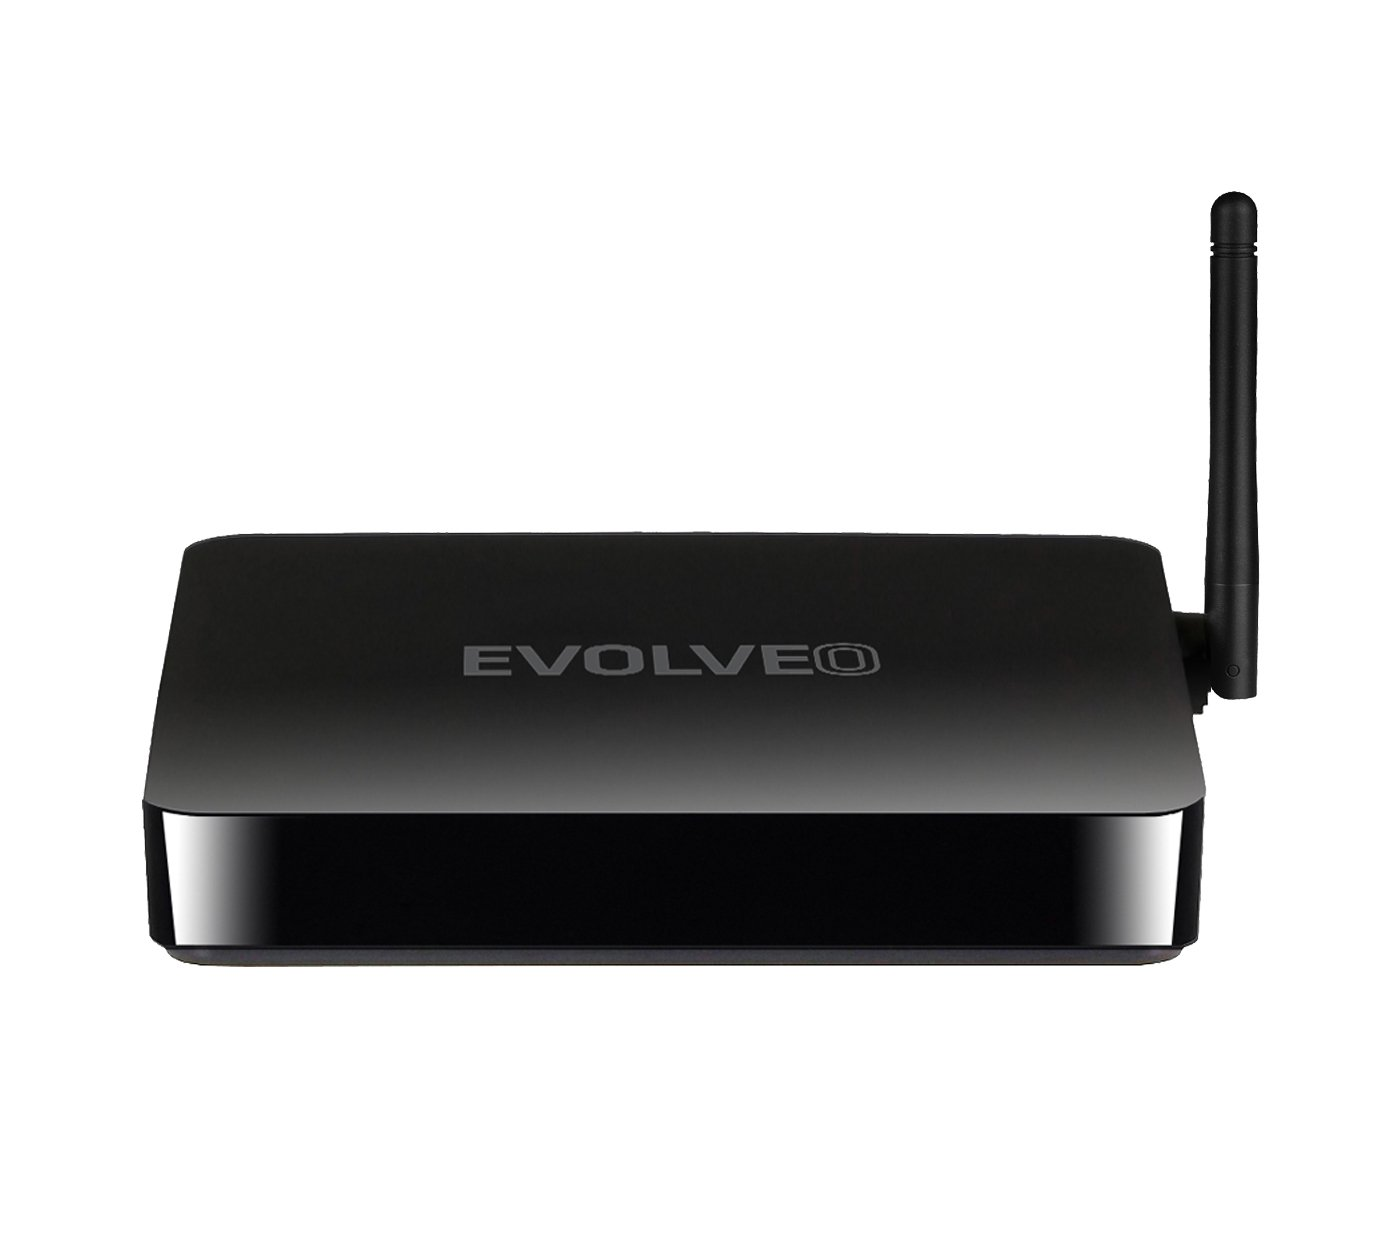 EVOLVEO Android Box Q5 4K, Quad Core Smart TV box with 4K playback support]